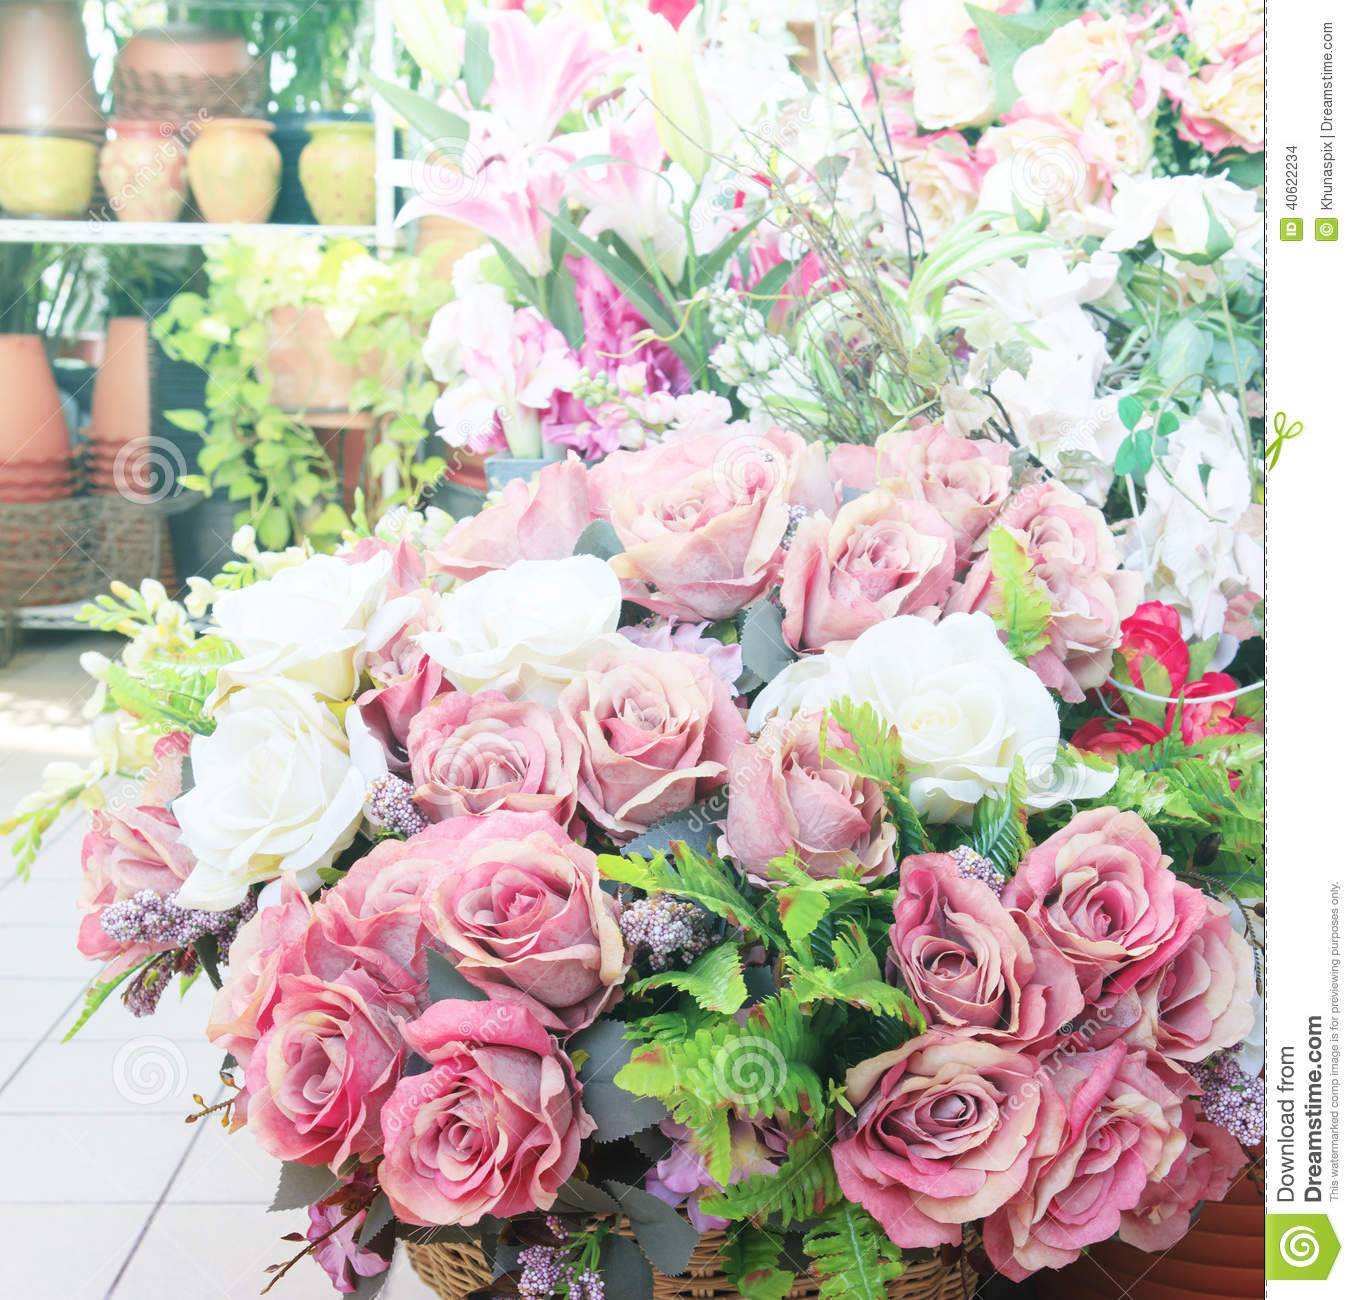 Good Flowers Bouquet Arrange For Decoration In Home Stock Images